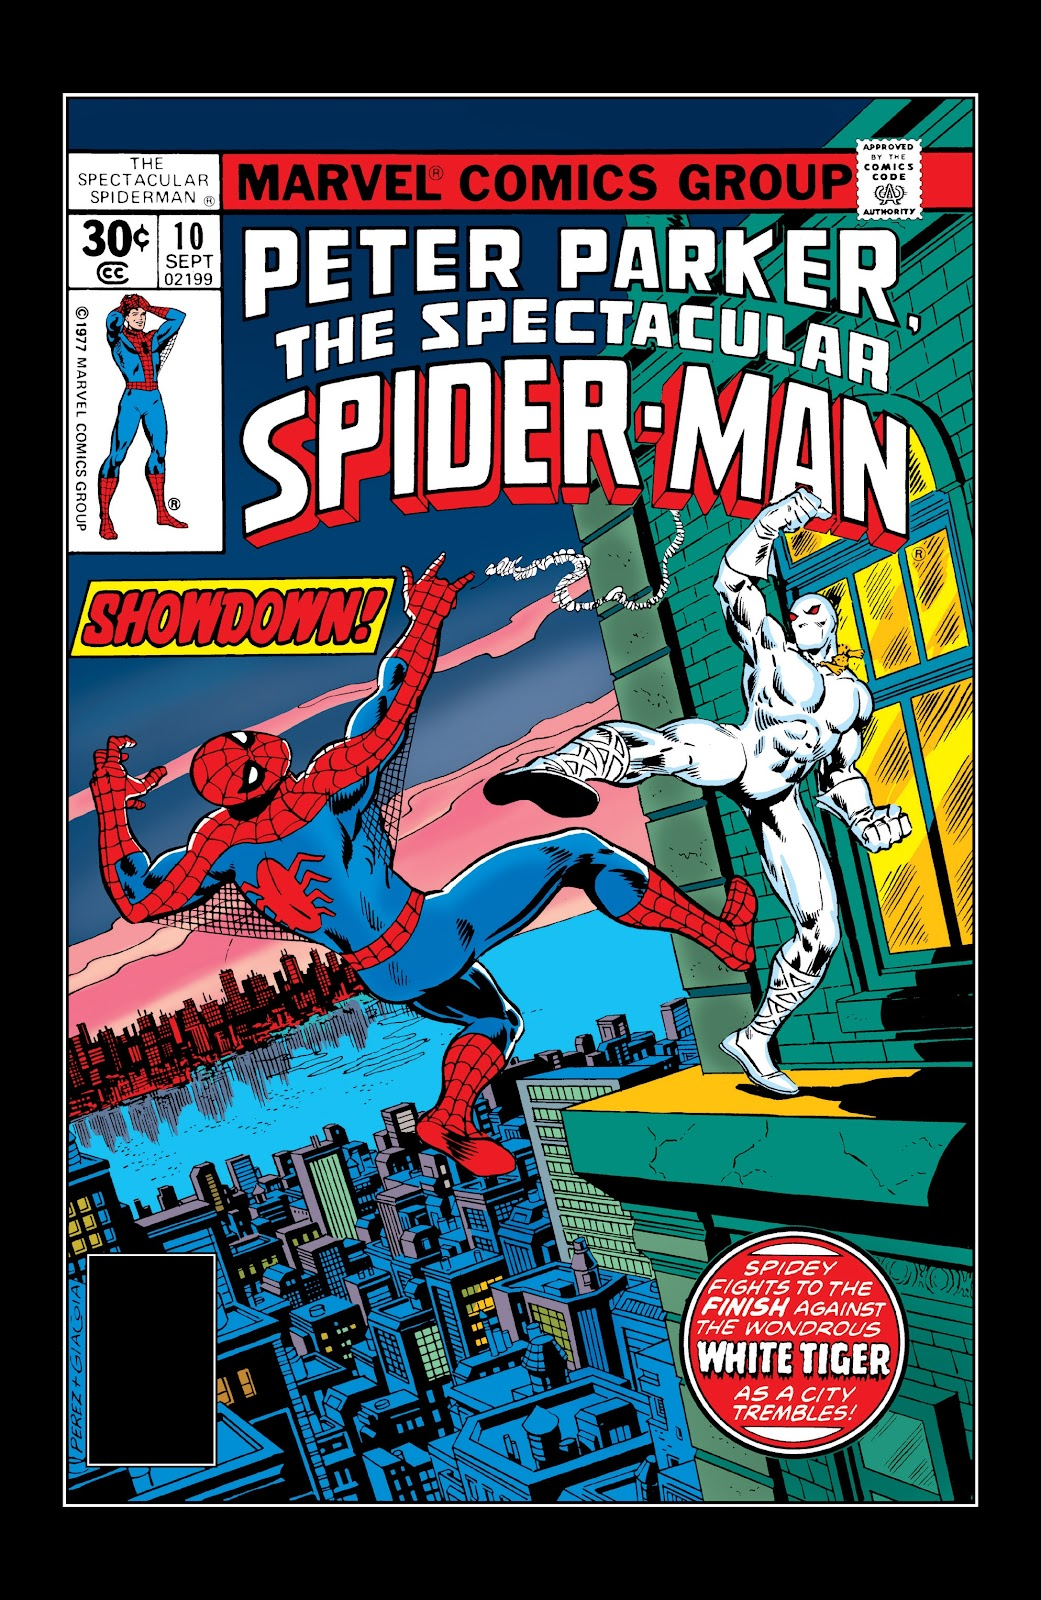 Read online Marvel Masterworks: The Spectacular Spider-Man comic -  Issue # TPB (Part 2) - 56